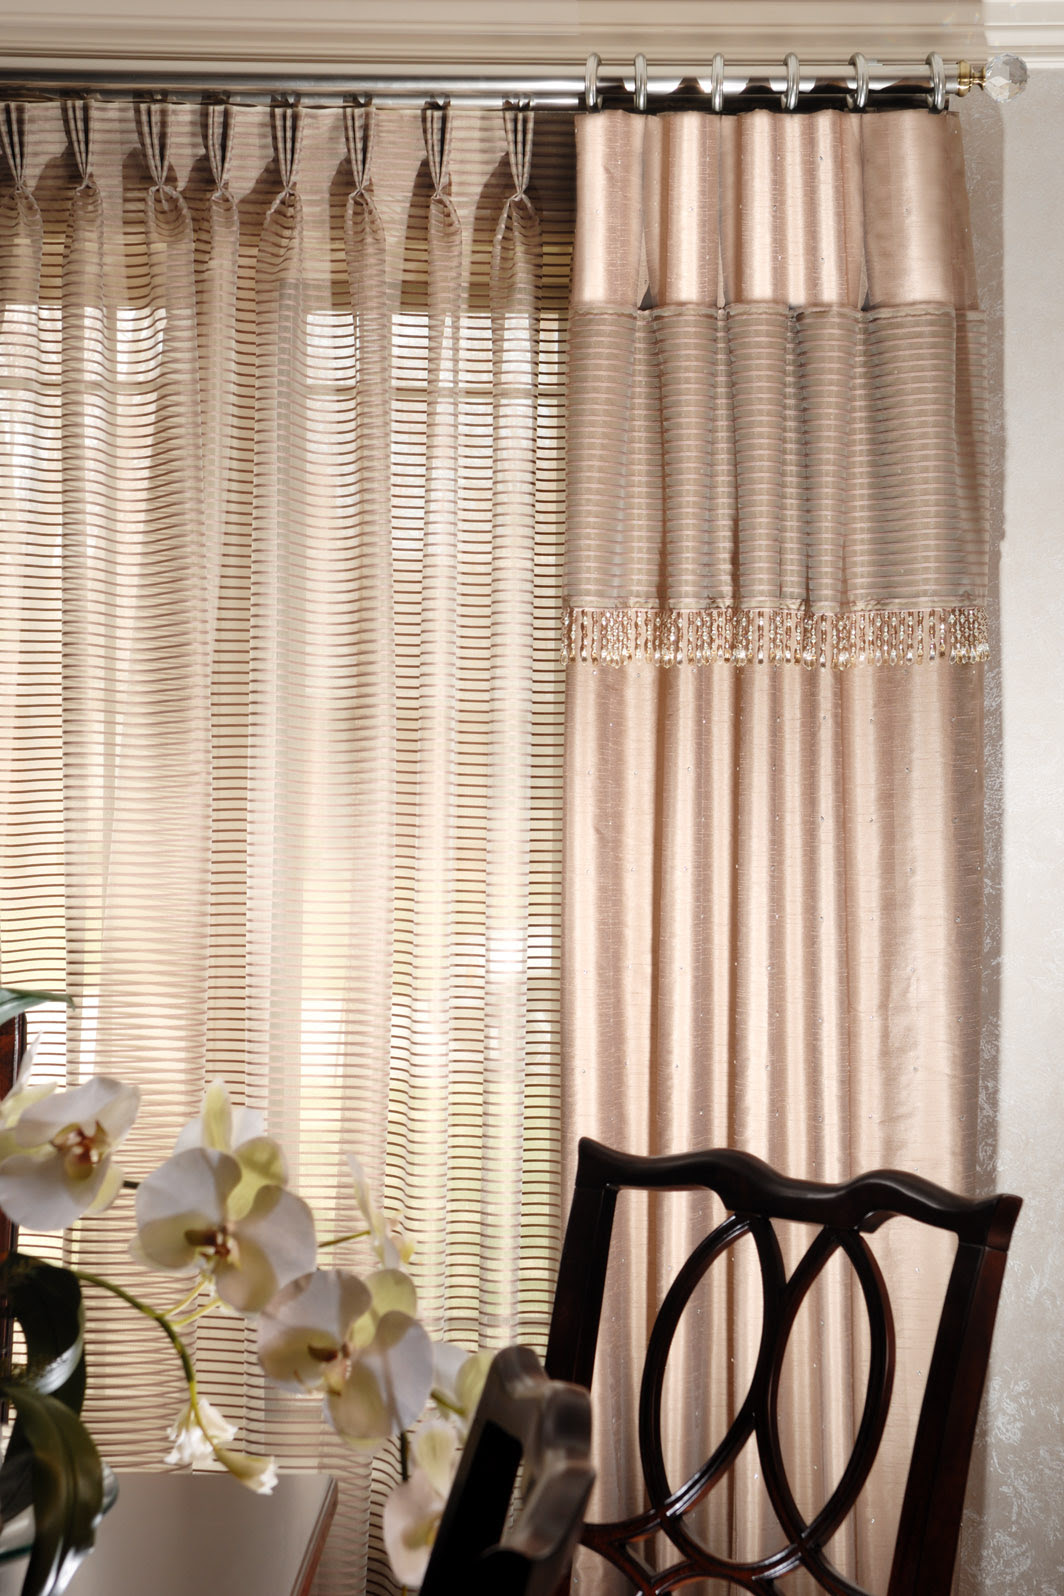 The ABC's of Decorating….T is for Terrific Window Treatment Tips ...